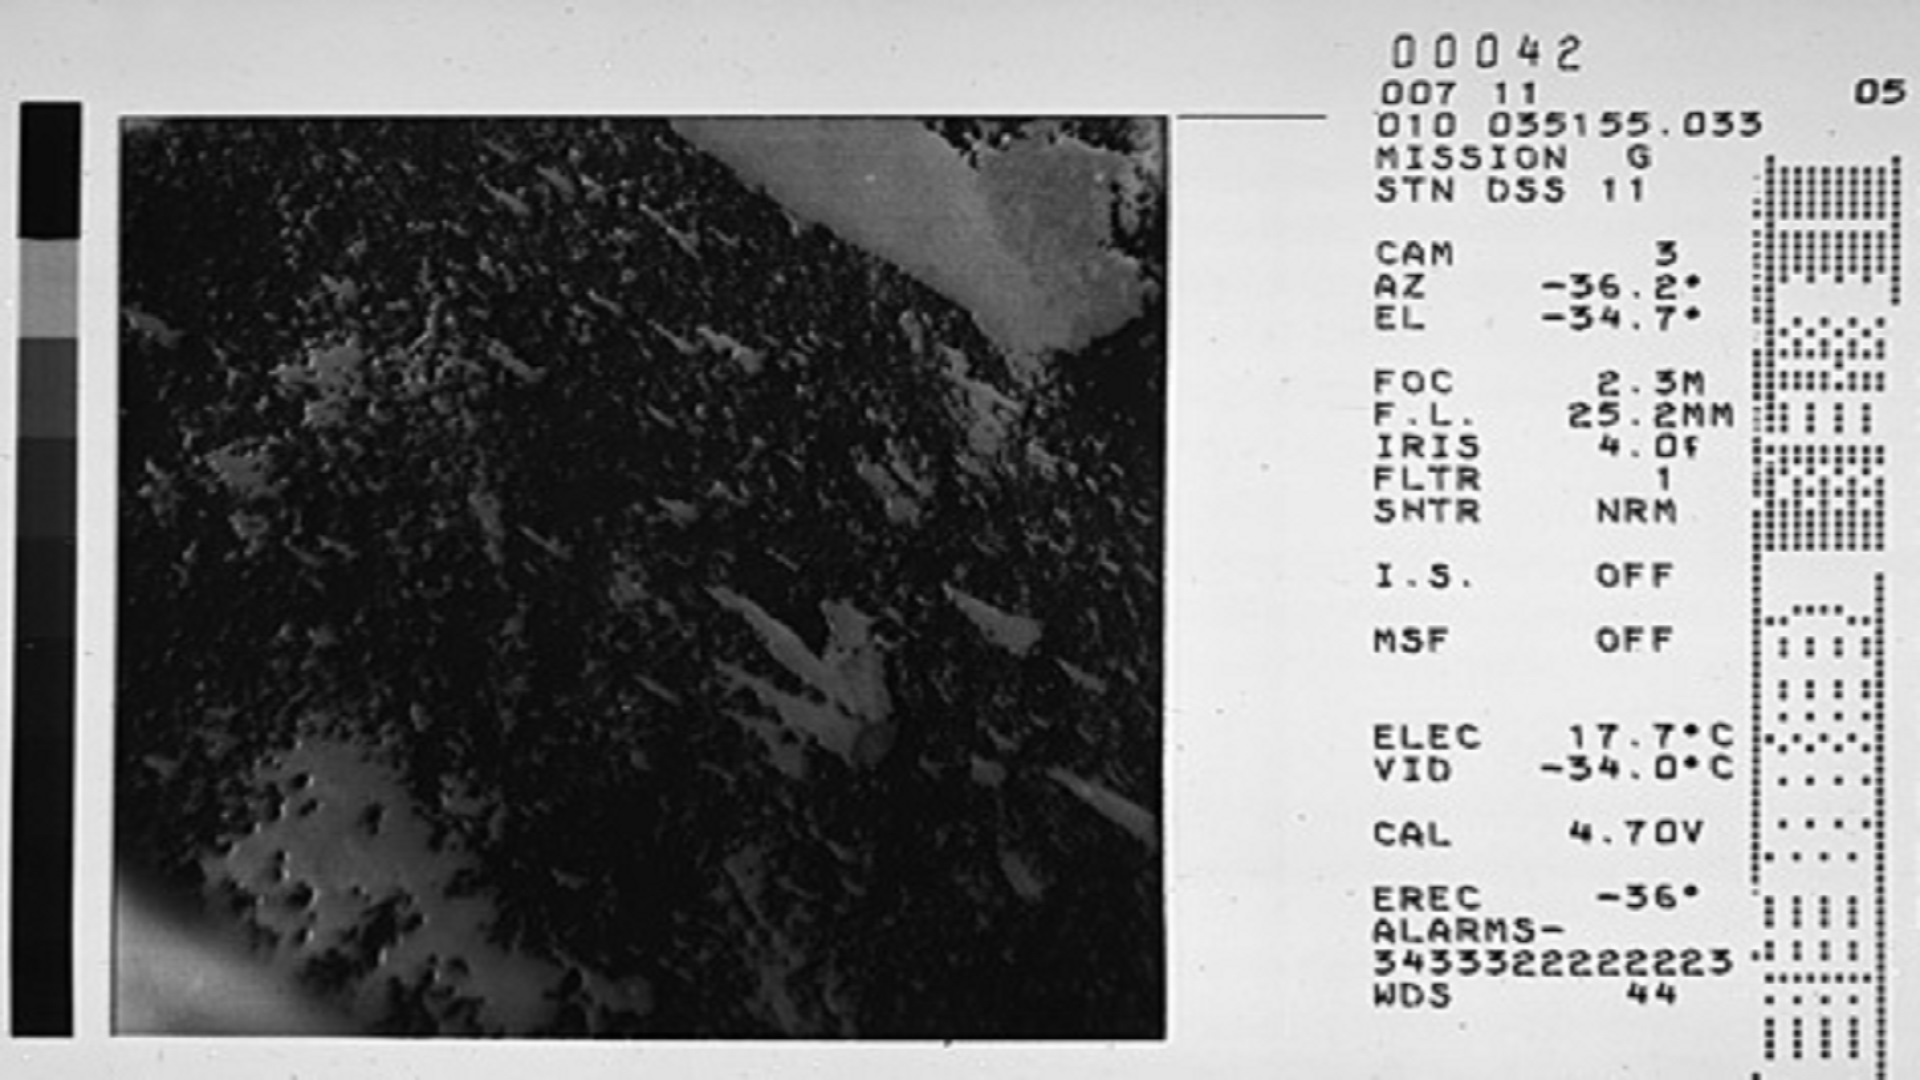 Example of a Surveyor mission film image captured by a 70 mm film camera and photographed onto special recording film